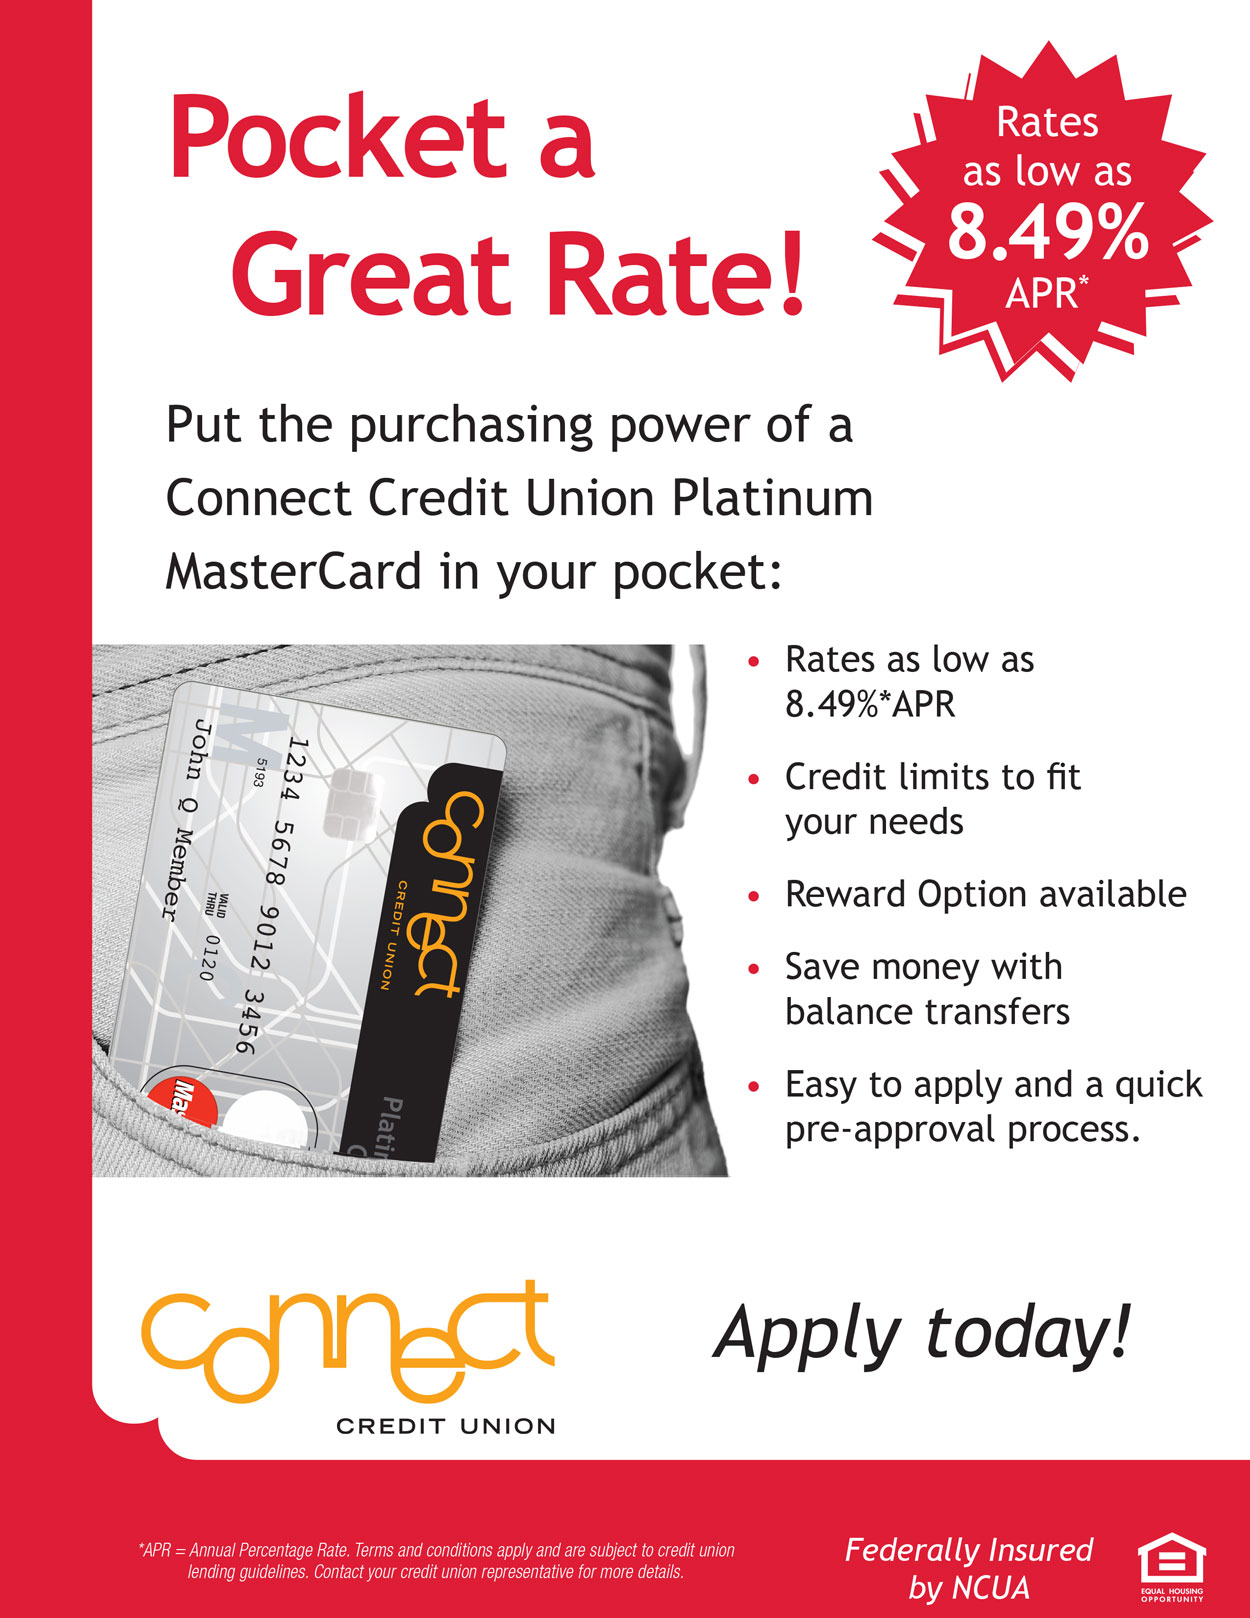 Pocket a Great Rate